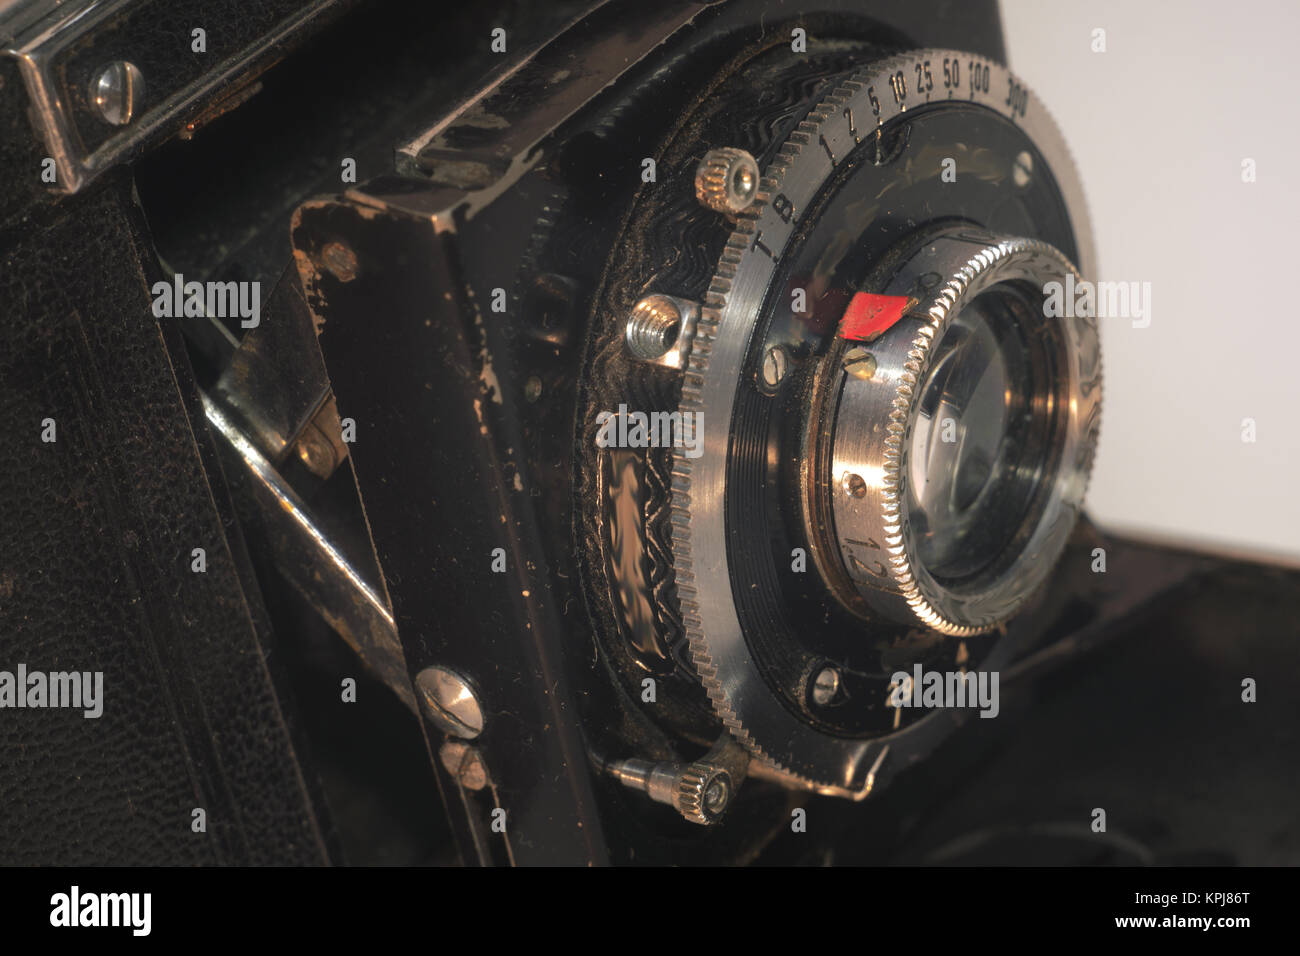 fixed lens of vintage folding camera with bellows, front view - Stock Image